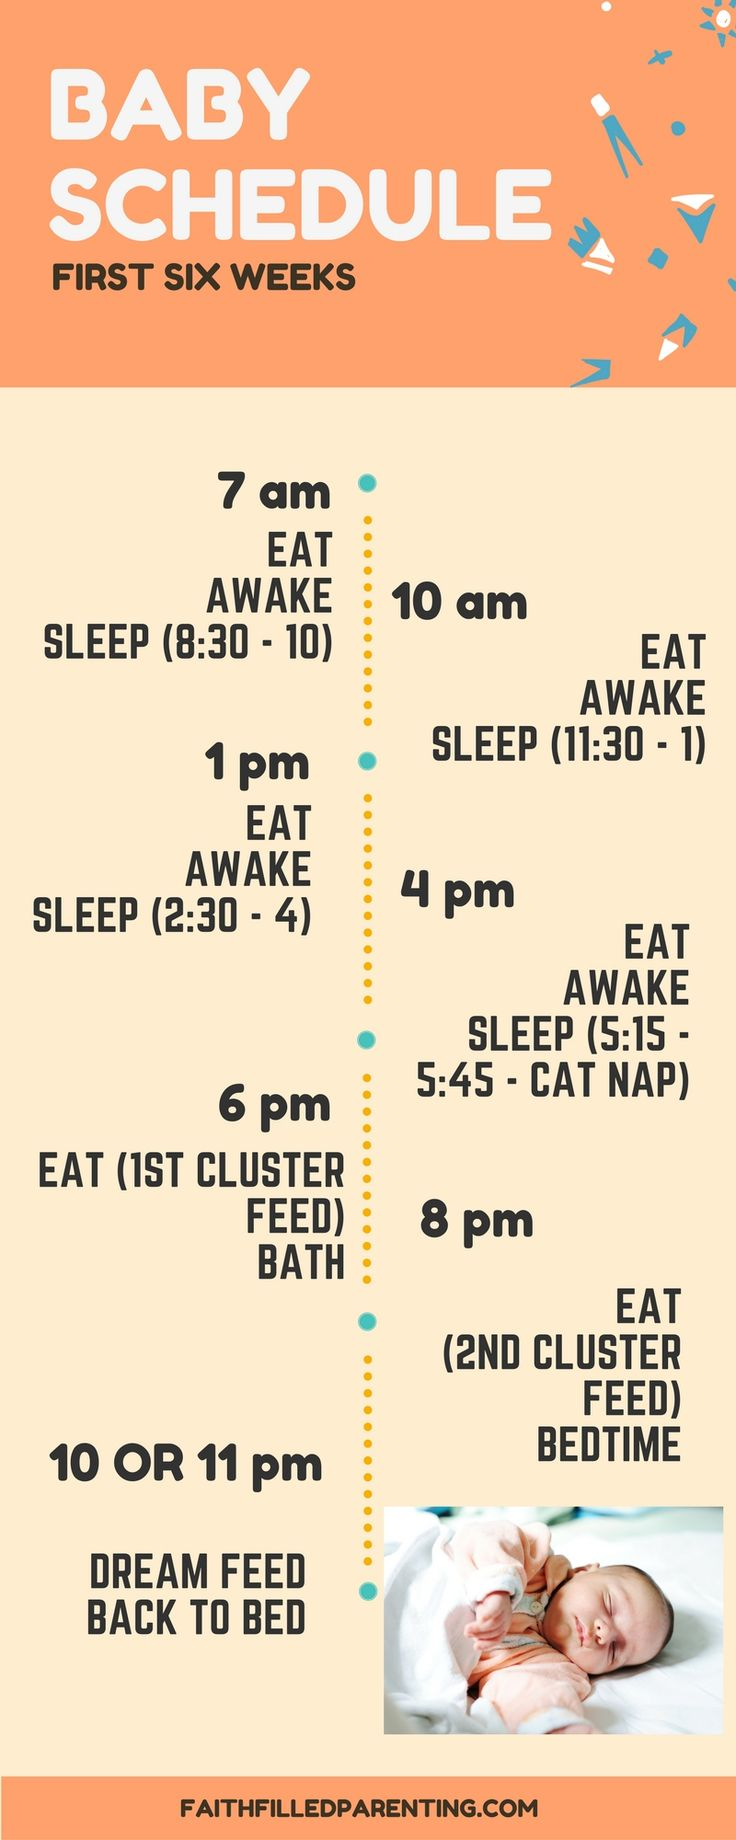 daycare infant nap schedule